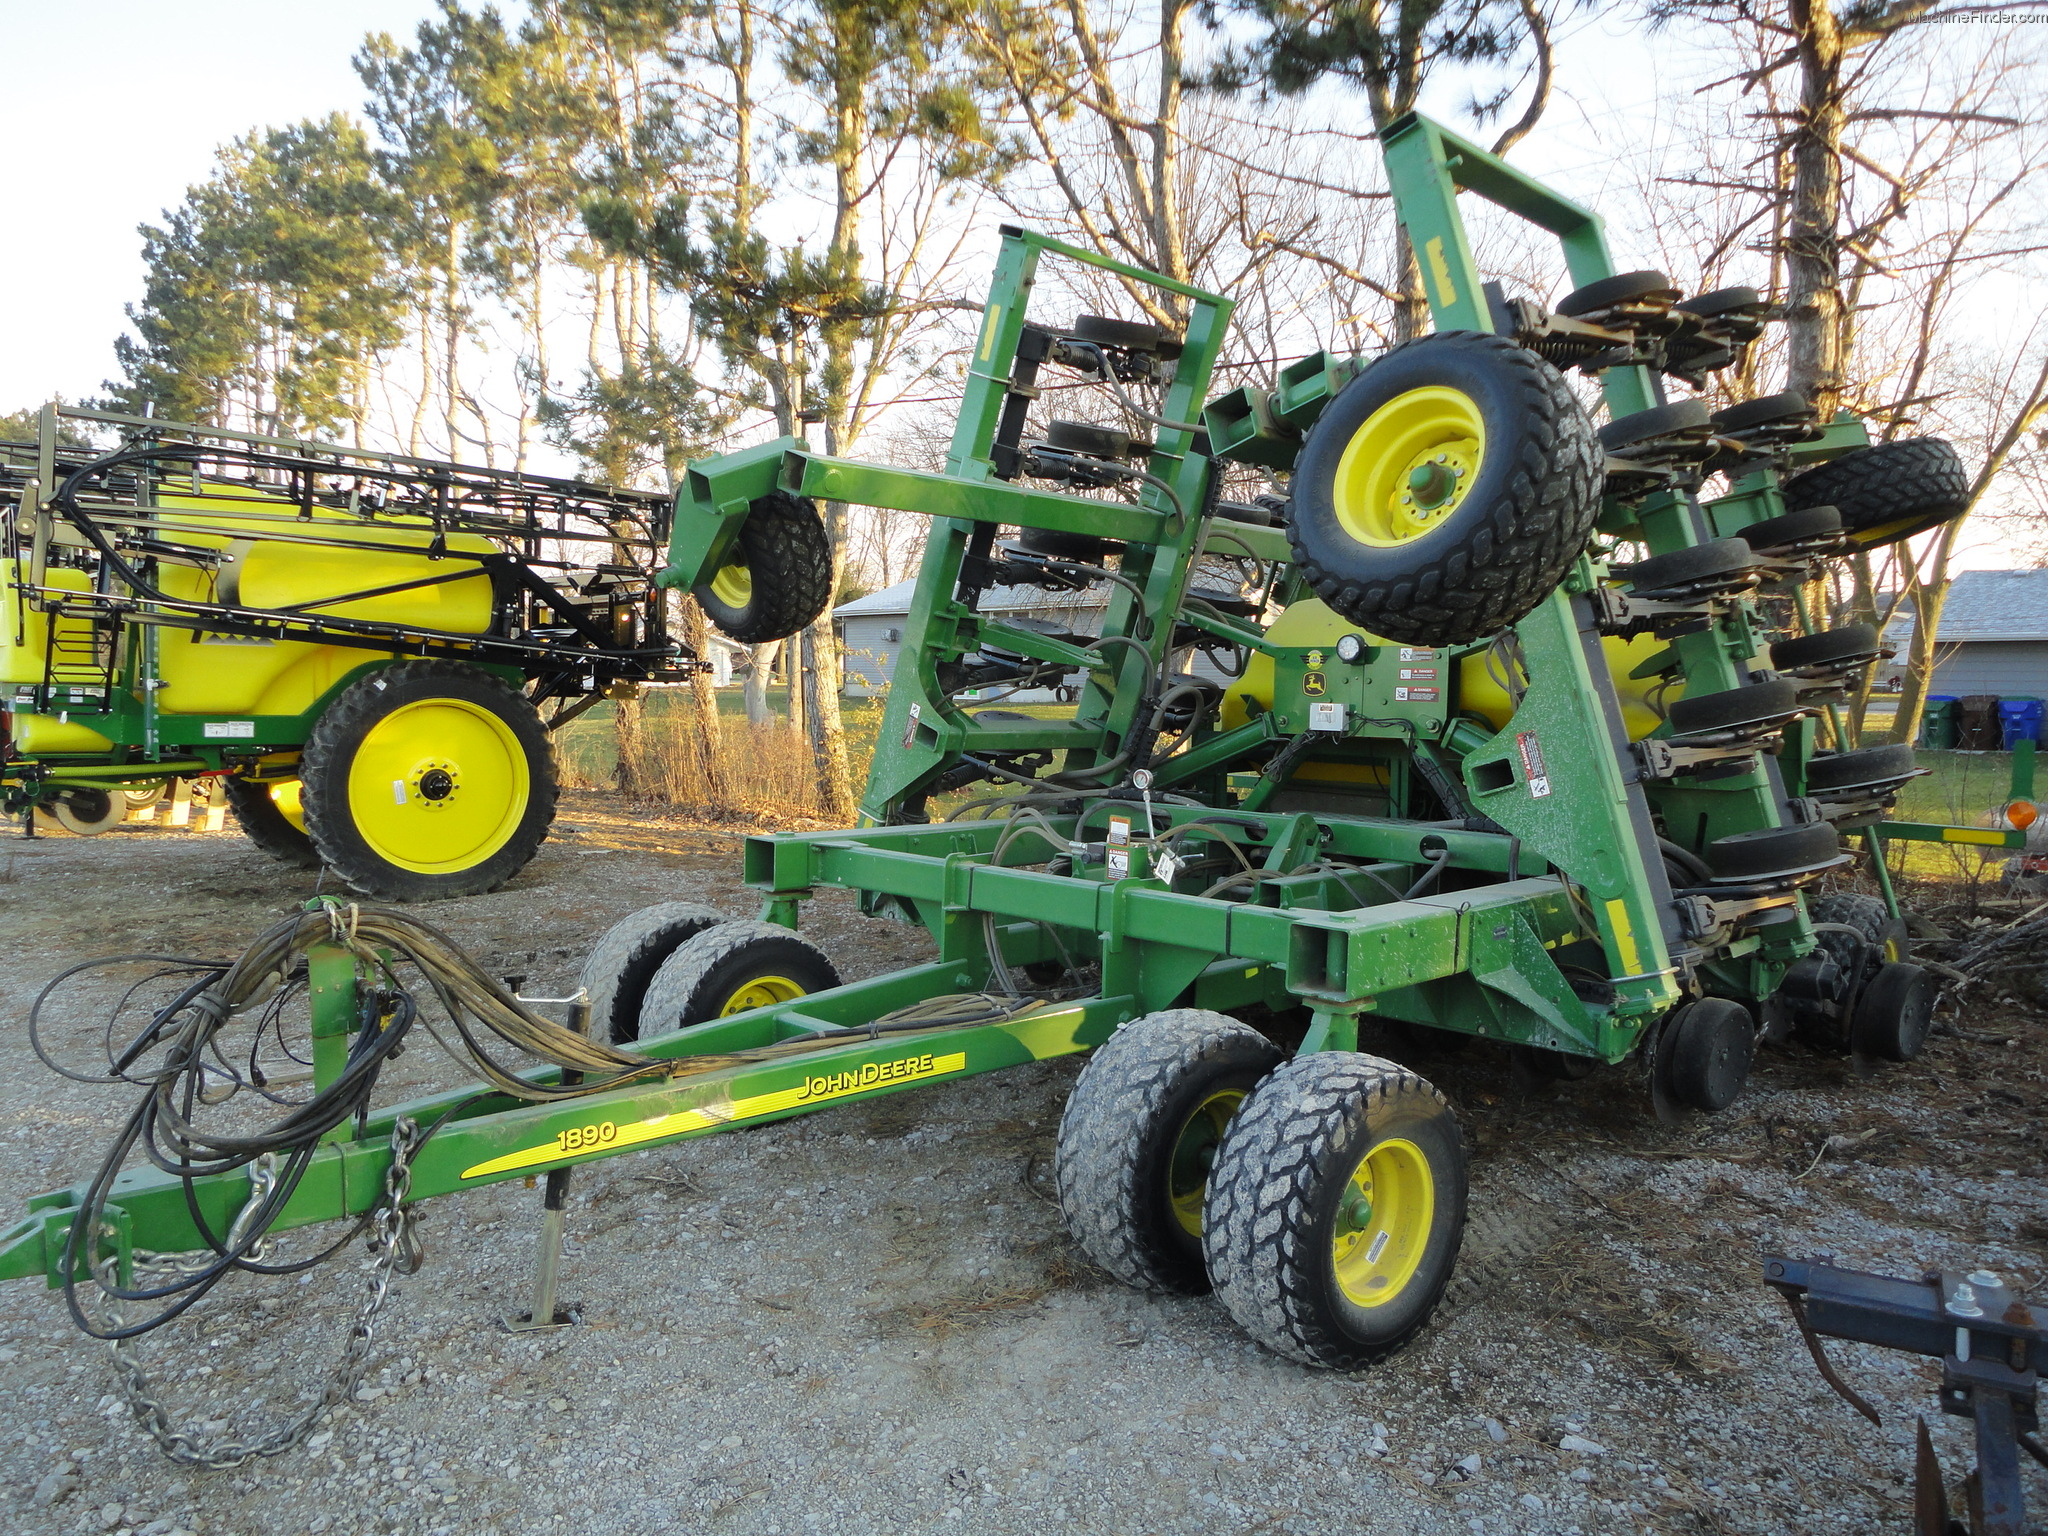 2005 John Deere 1890 Planting & Seeding - Air Drills ...